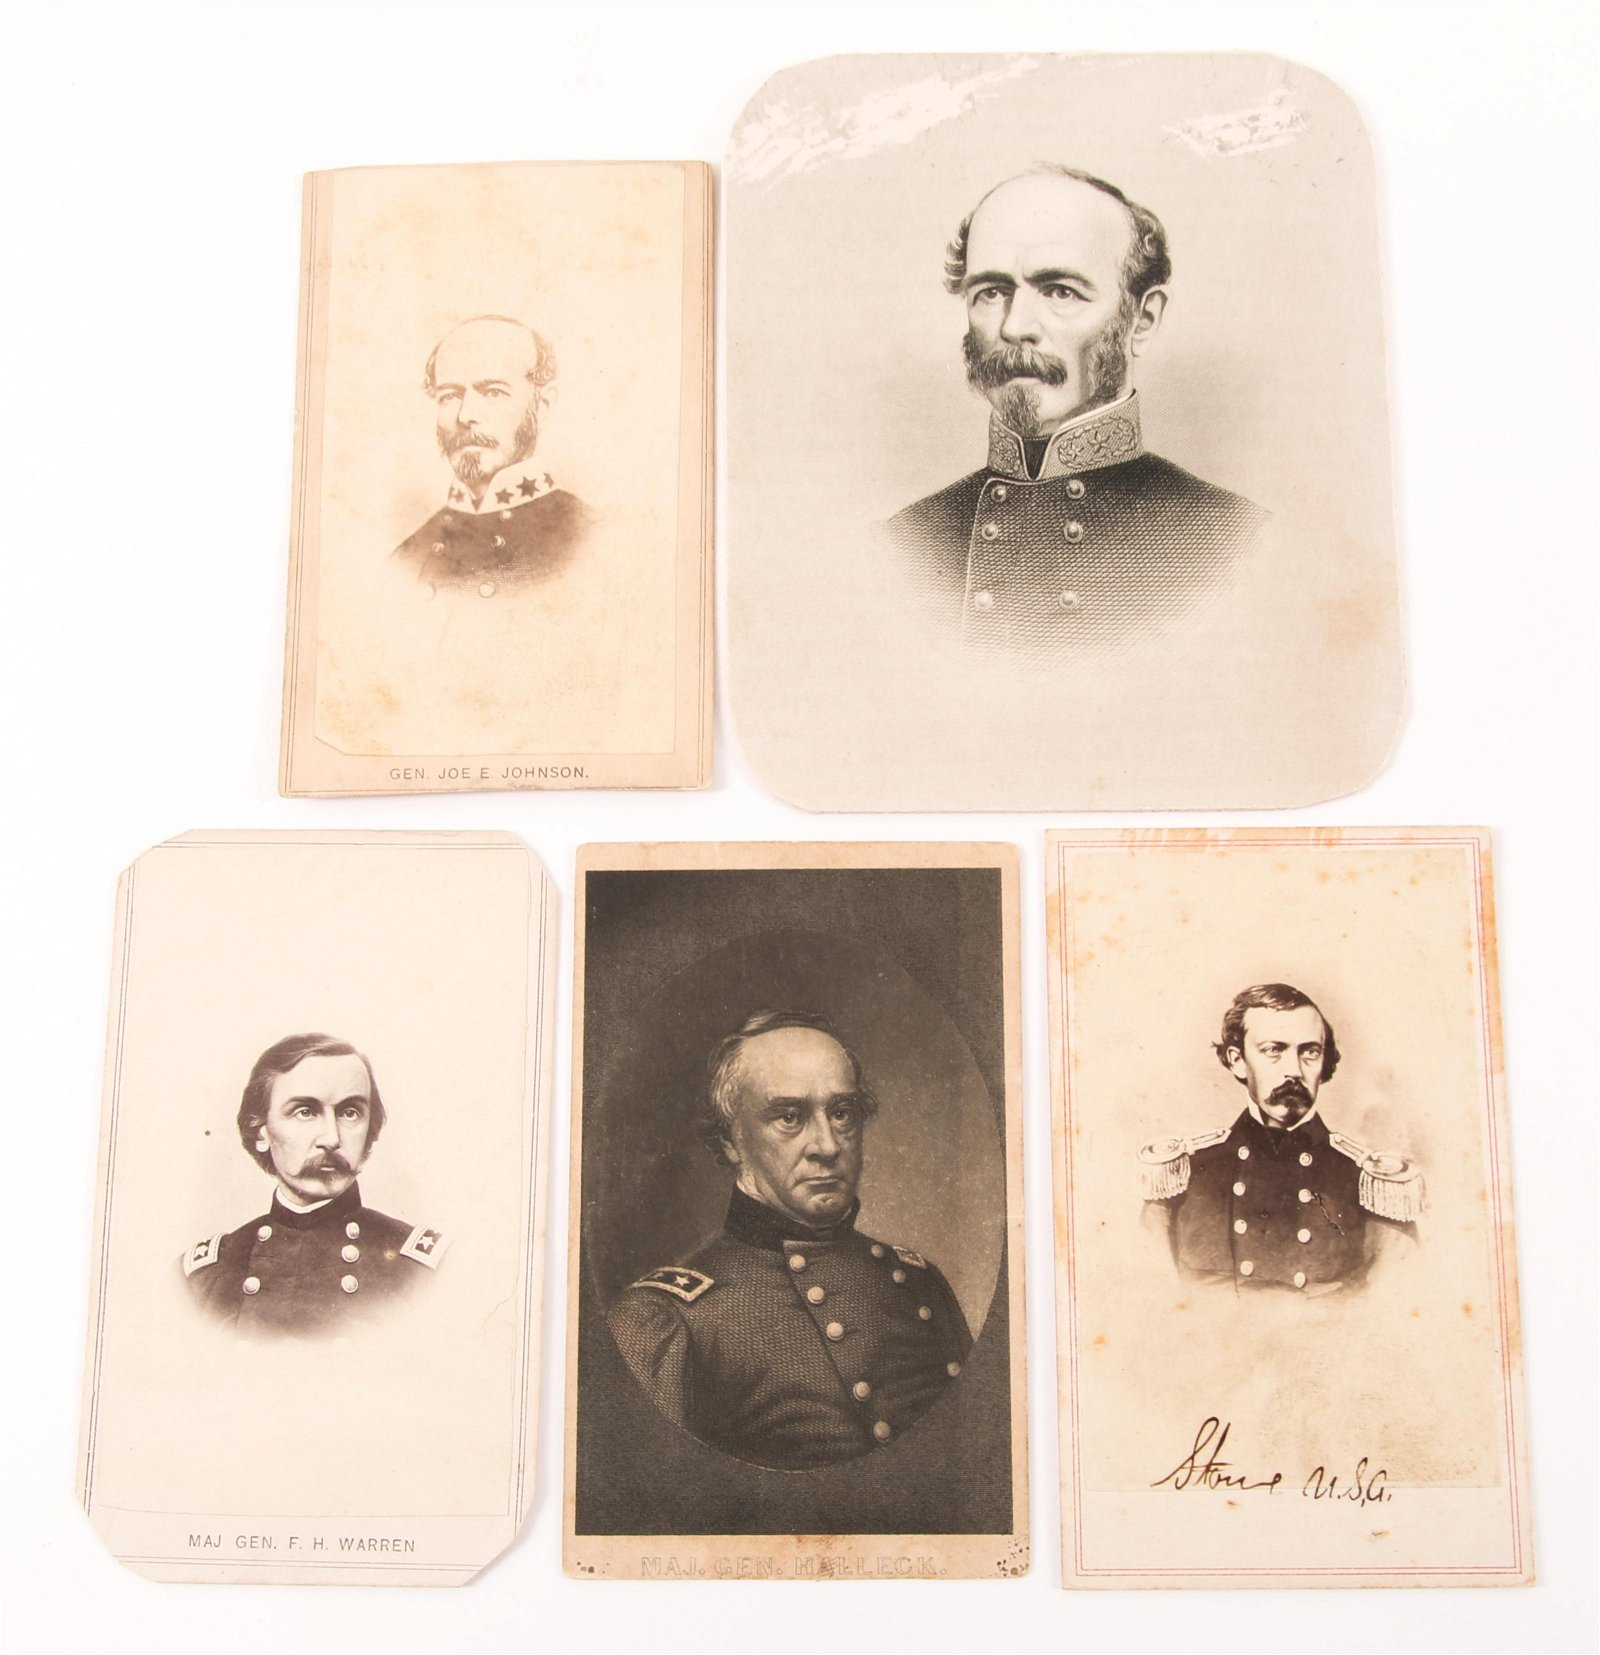 CIVIL WAR ERA CDV CABINET CARD GENERALS, OFFICER